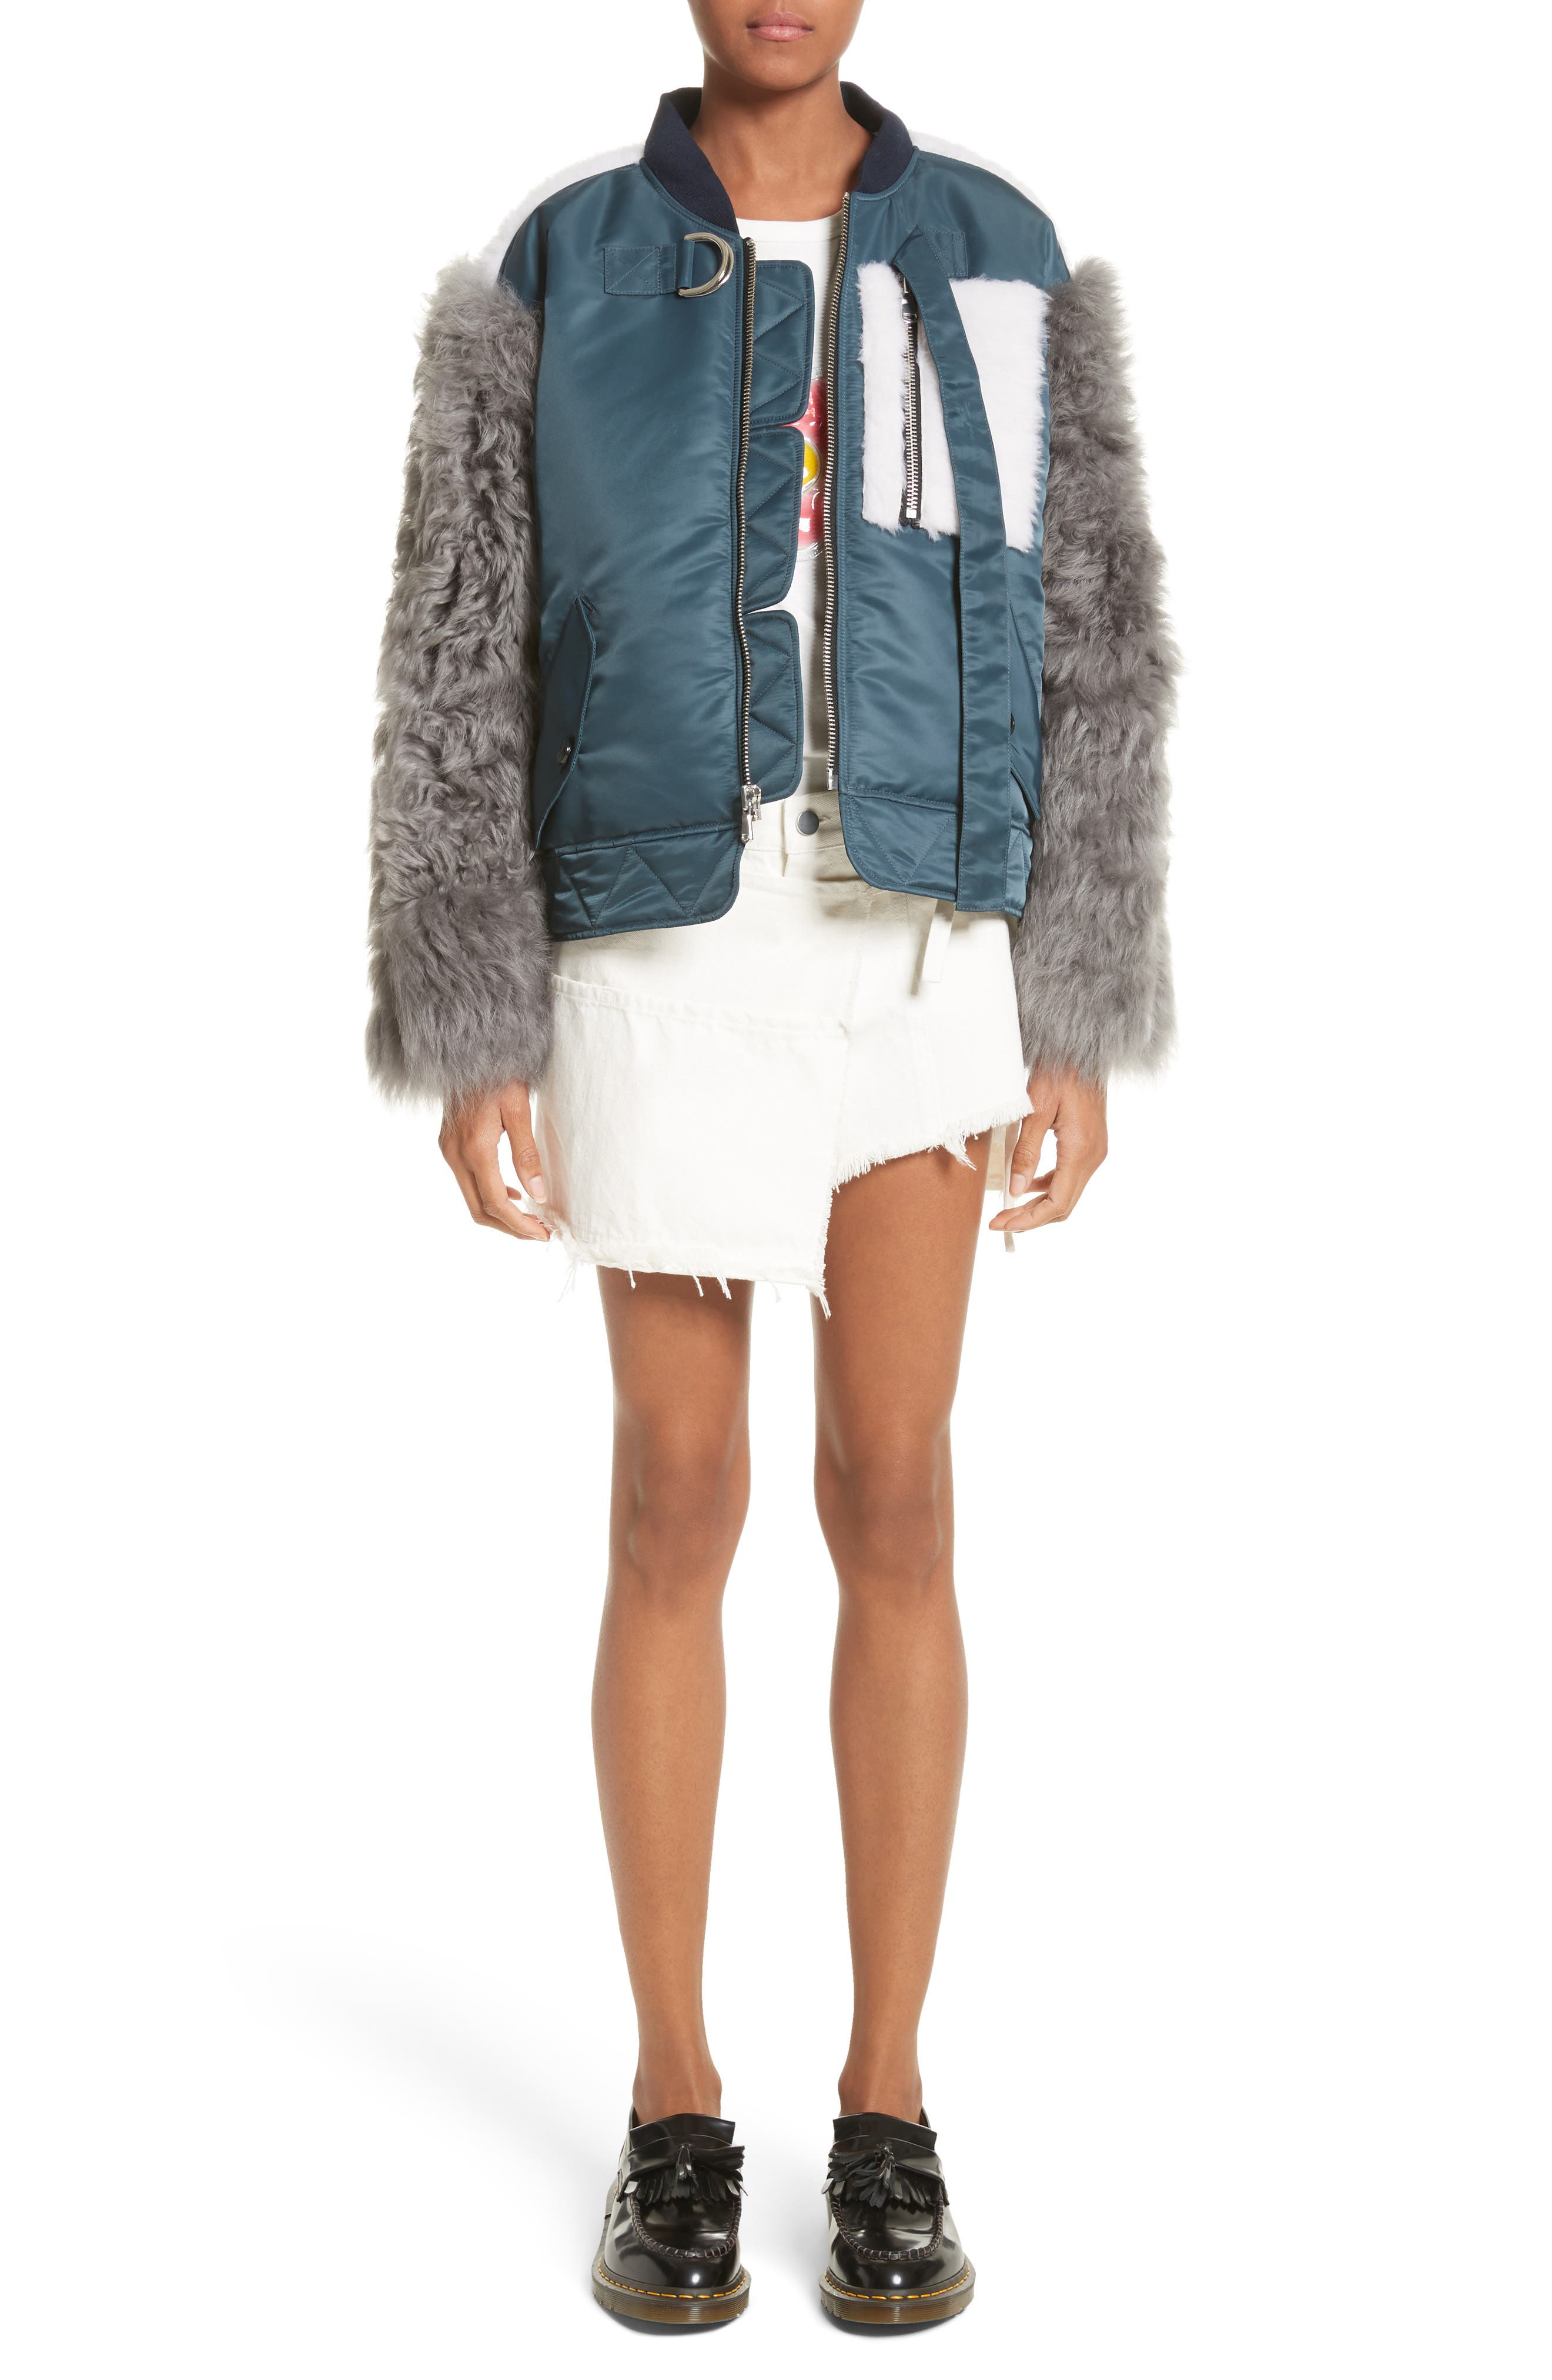 Peter Genuine Shearling Sleeve Jacket,                             Alternate thumbnail 7, color,                             Navy